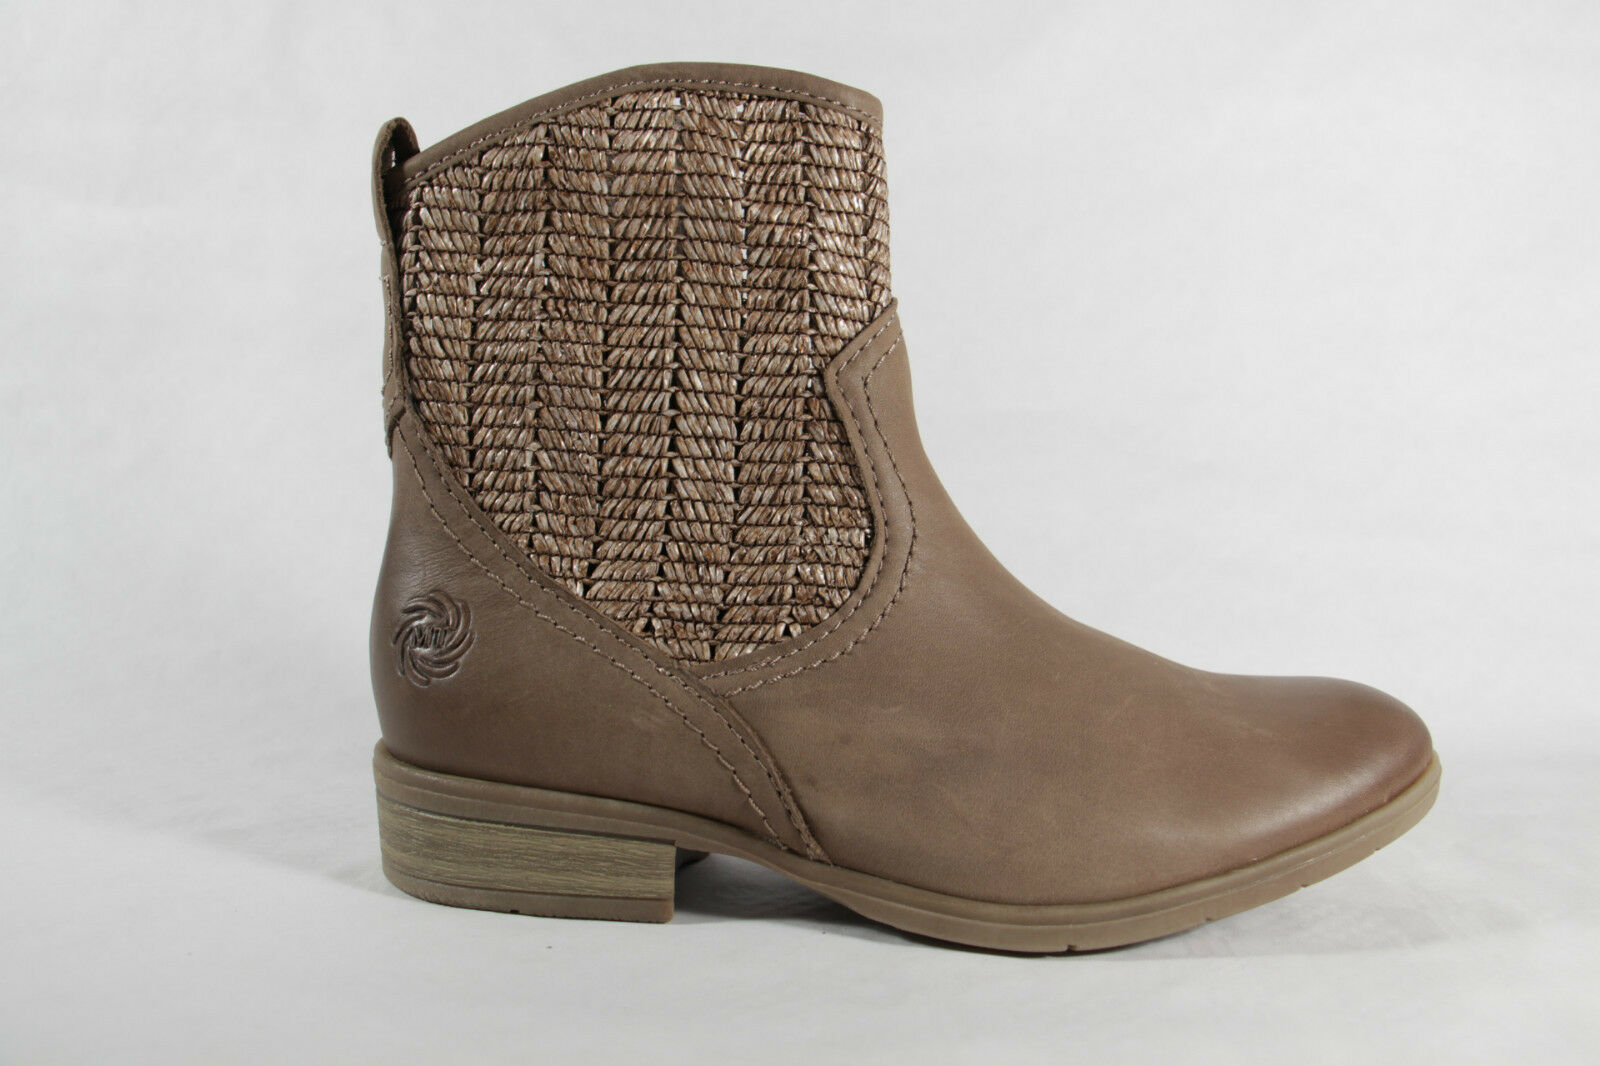 MARCO TOZZI Ankle Boots Beige Fashion Summer Boots Leather RV NEW